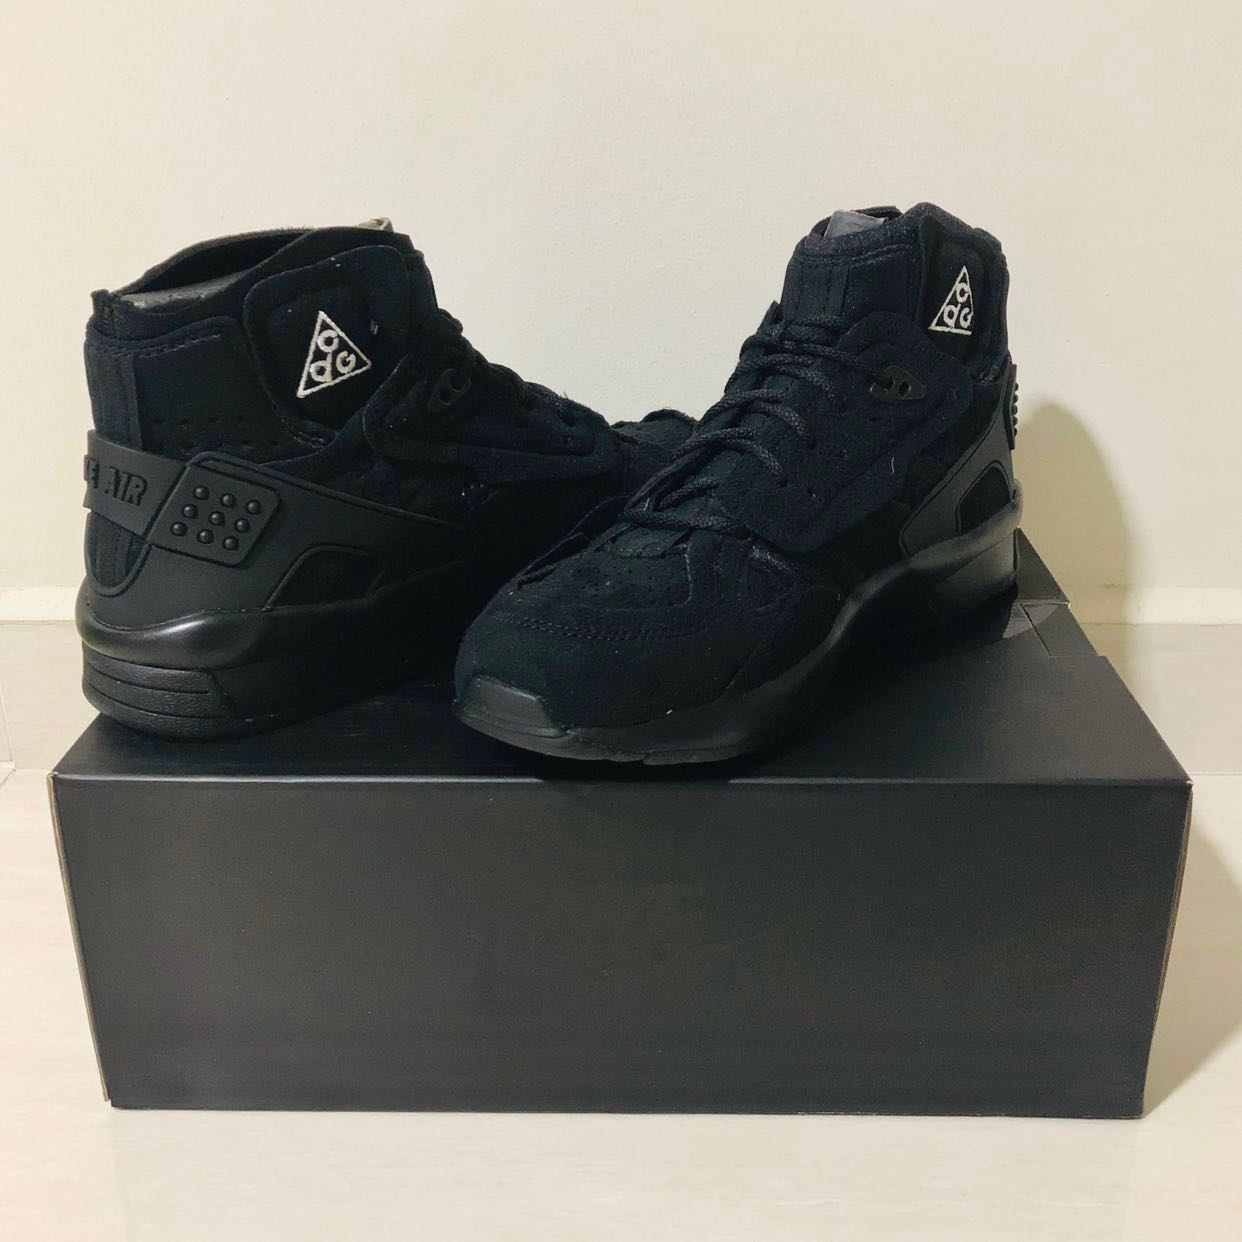 newest collection b9986 93db6 COMME DES GARCONS X NIKE ACG MOWABB, Mens Fashion, Footwear, Sneakers on  Carousell